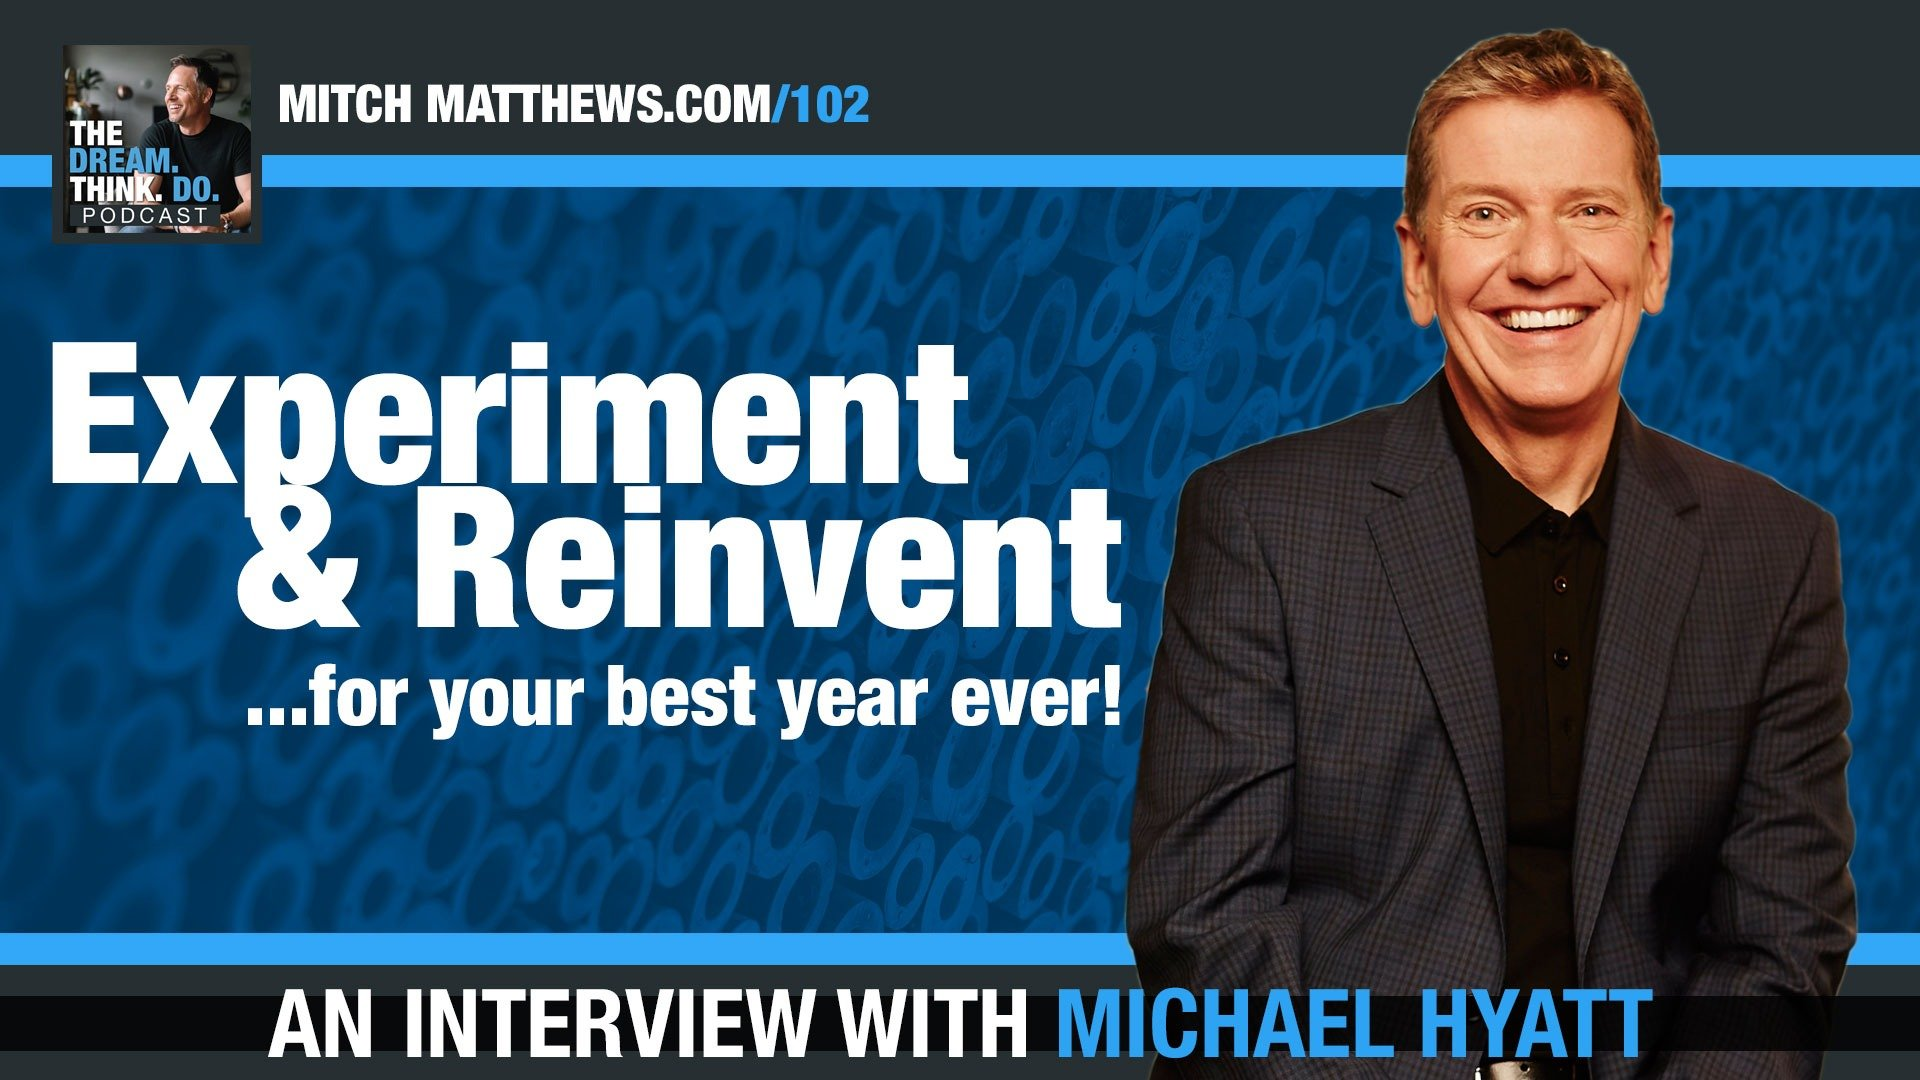 Michael Hyatt | Experiment & Reinvent for your best year ever!